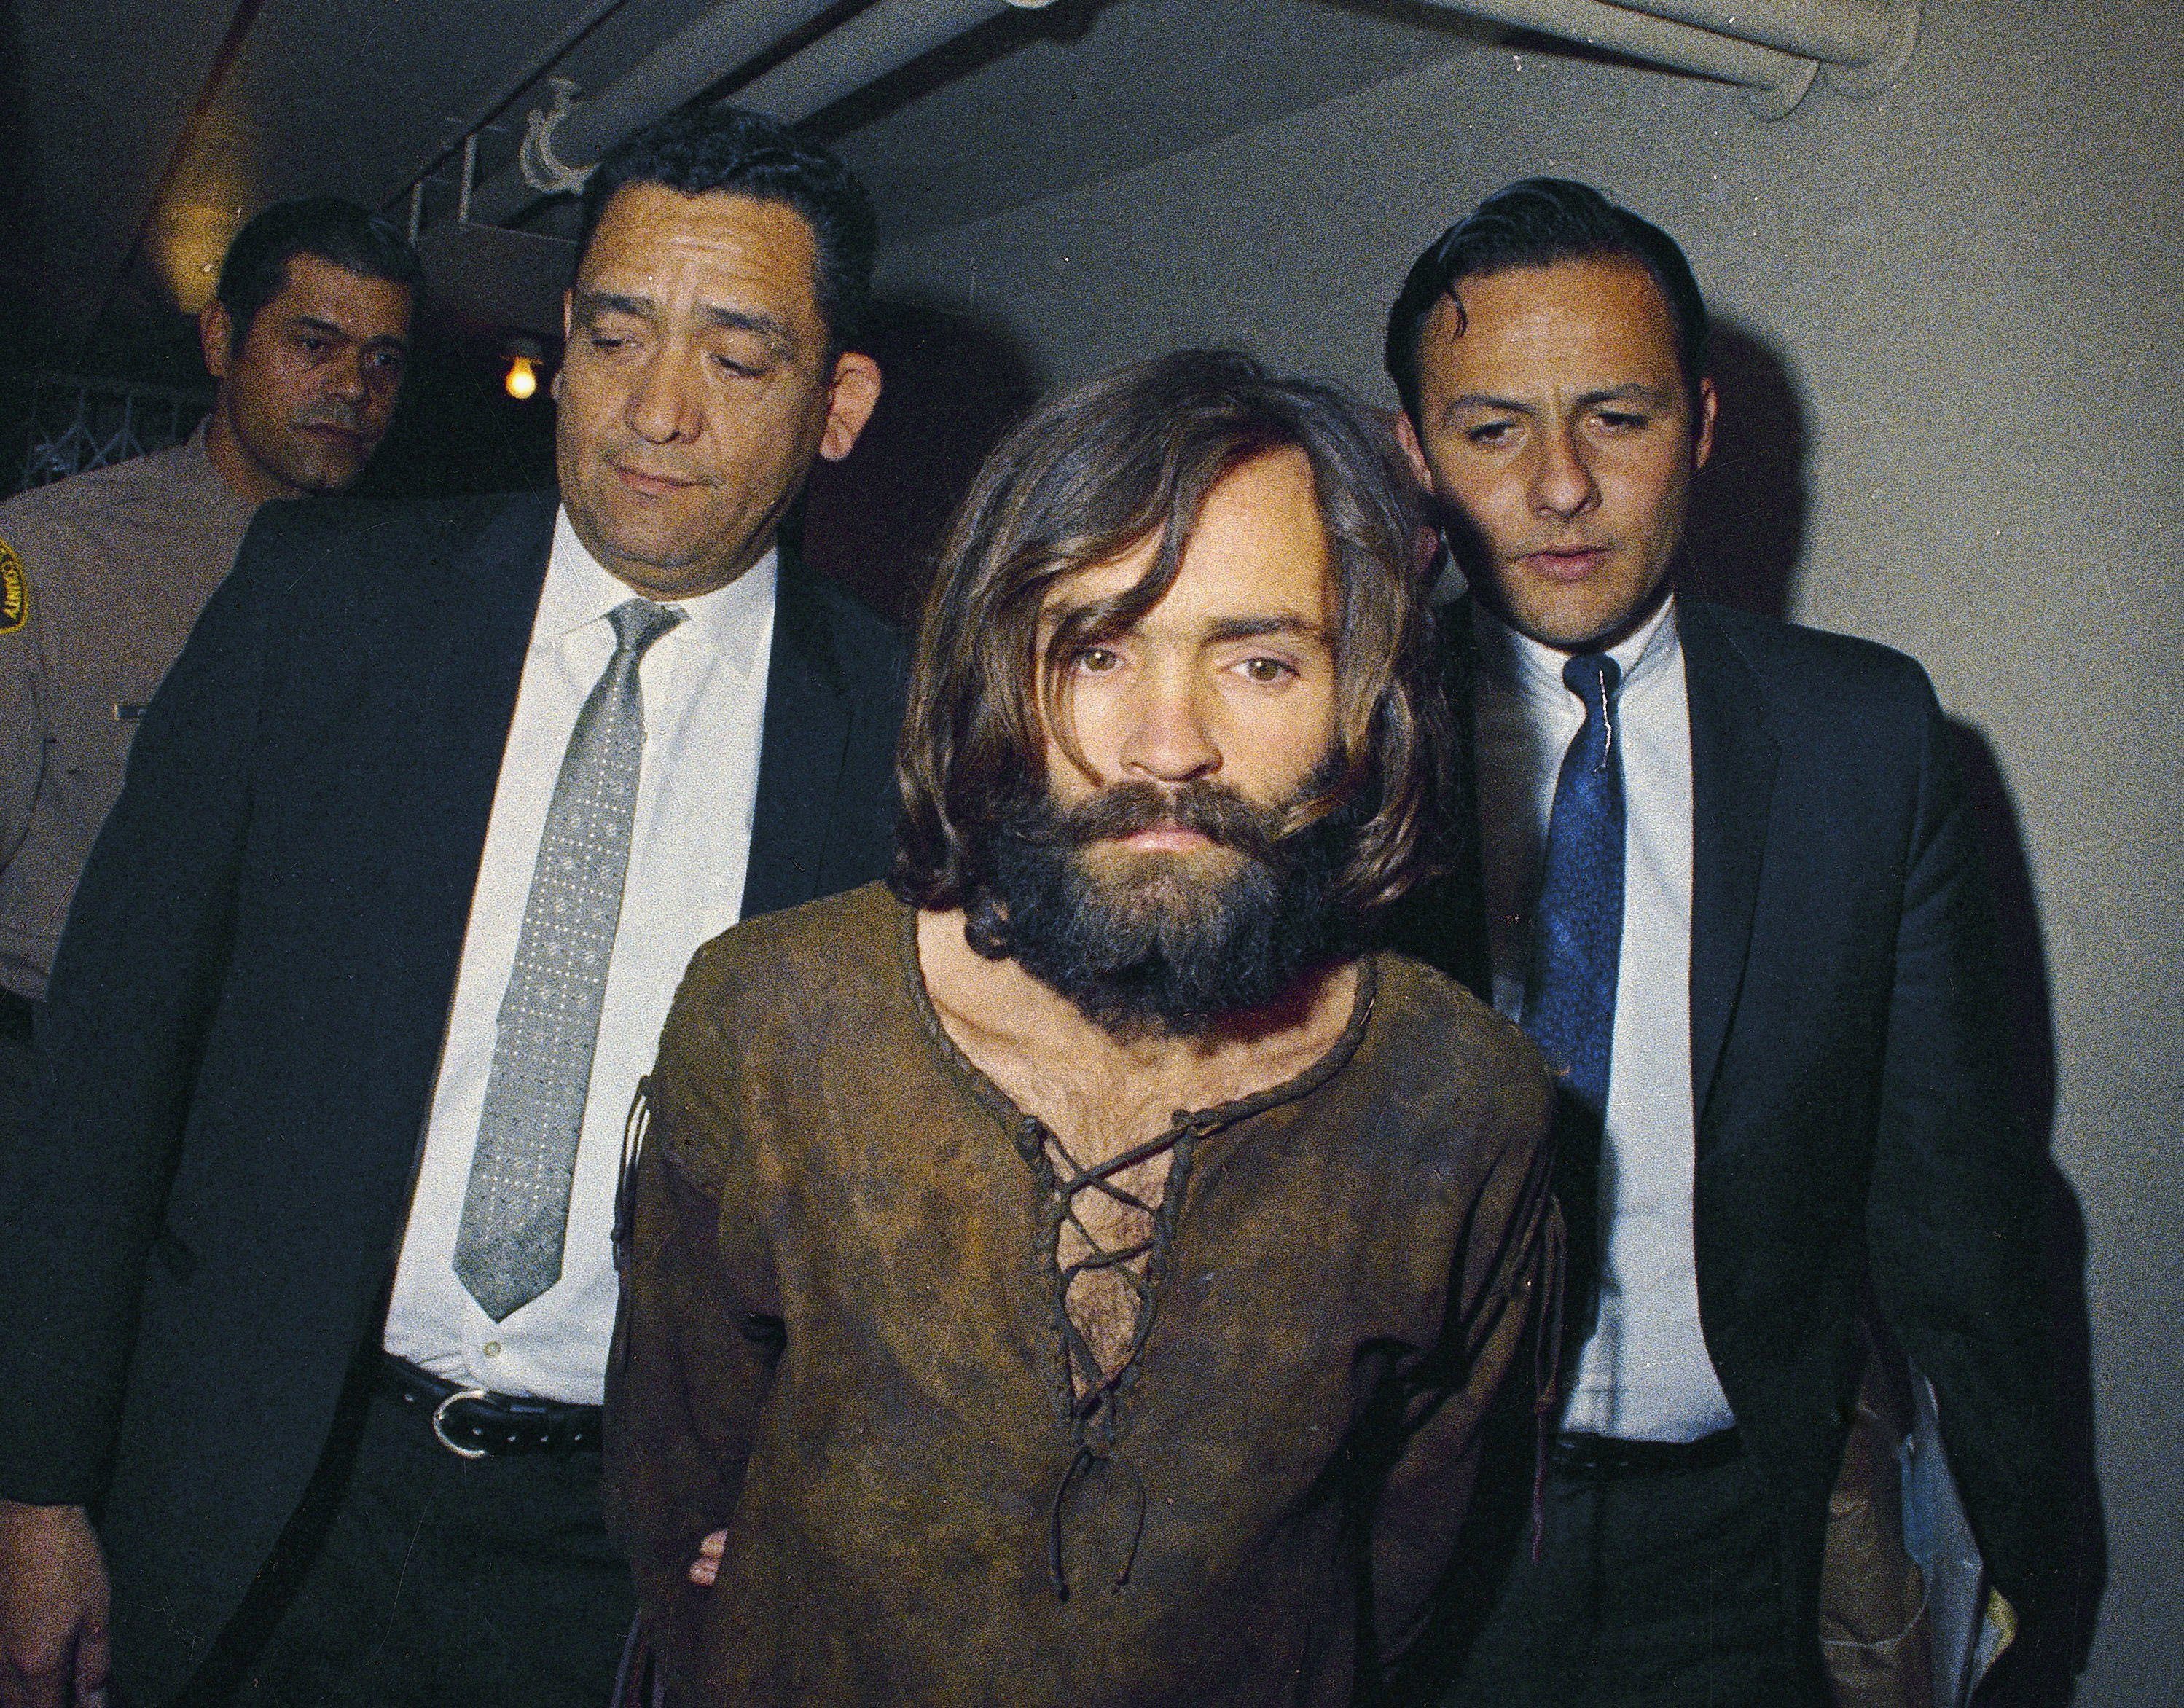 Kin seeks Manson corpse to put 'so-called monster' to rest